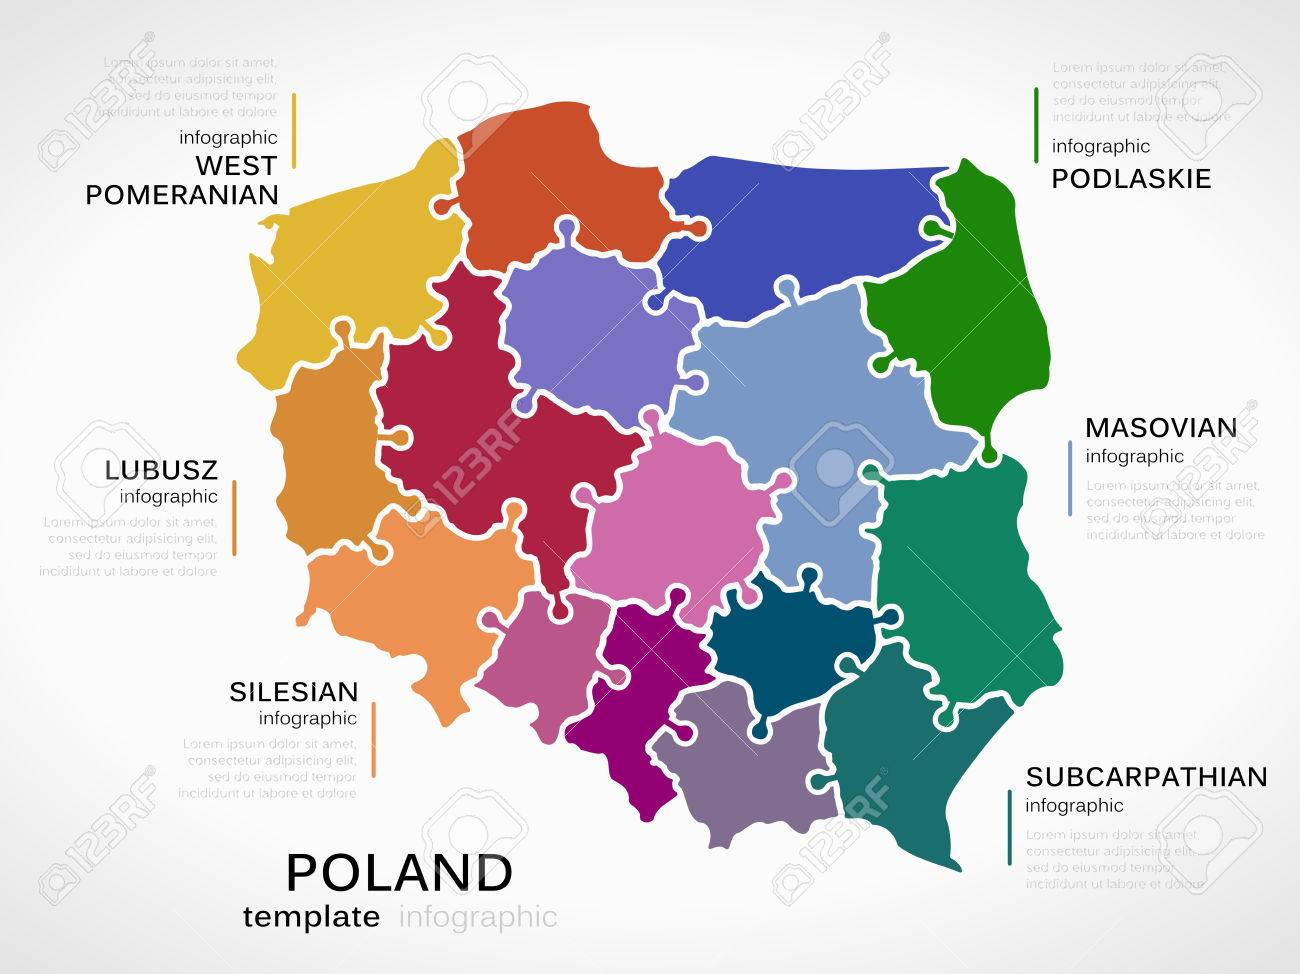 Map of poland concept infographic template with regions made map of poland concept infographic template with regions made out of puzzle pieces stock vector sciox Images